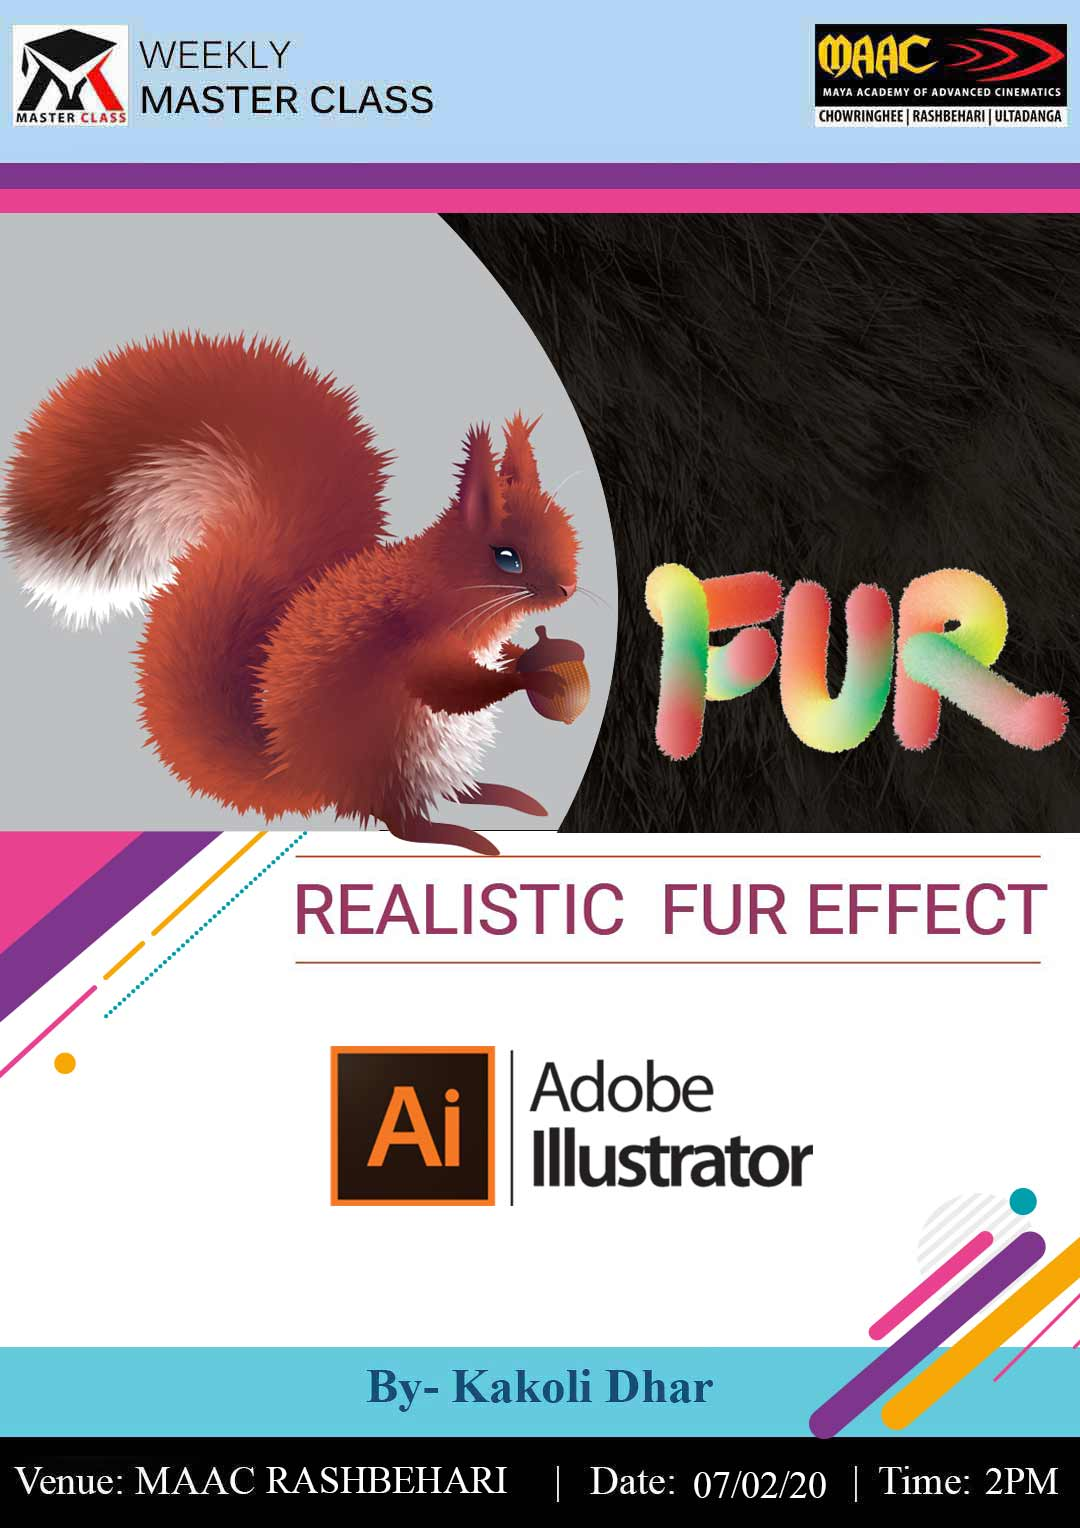 Weekly Master Class on Realistic Fur Effect in Illustrator